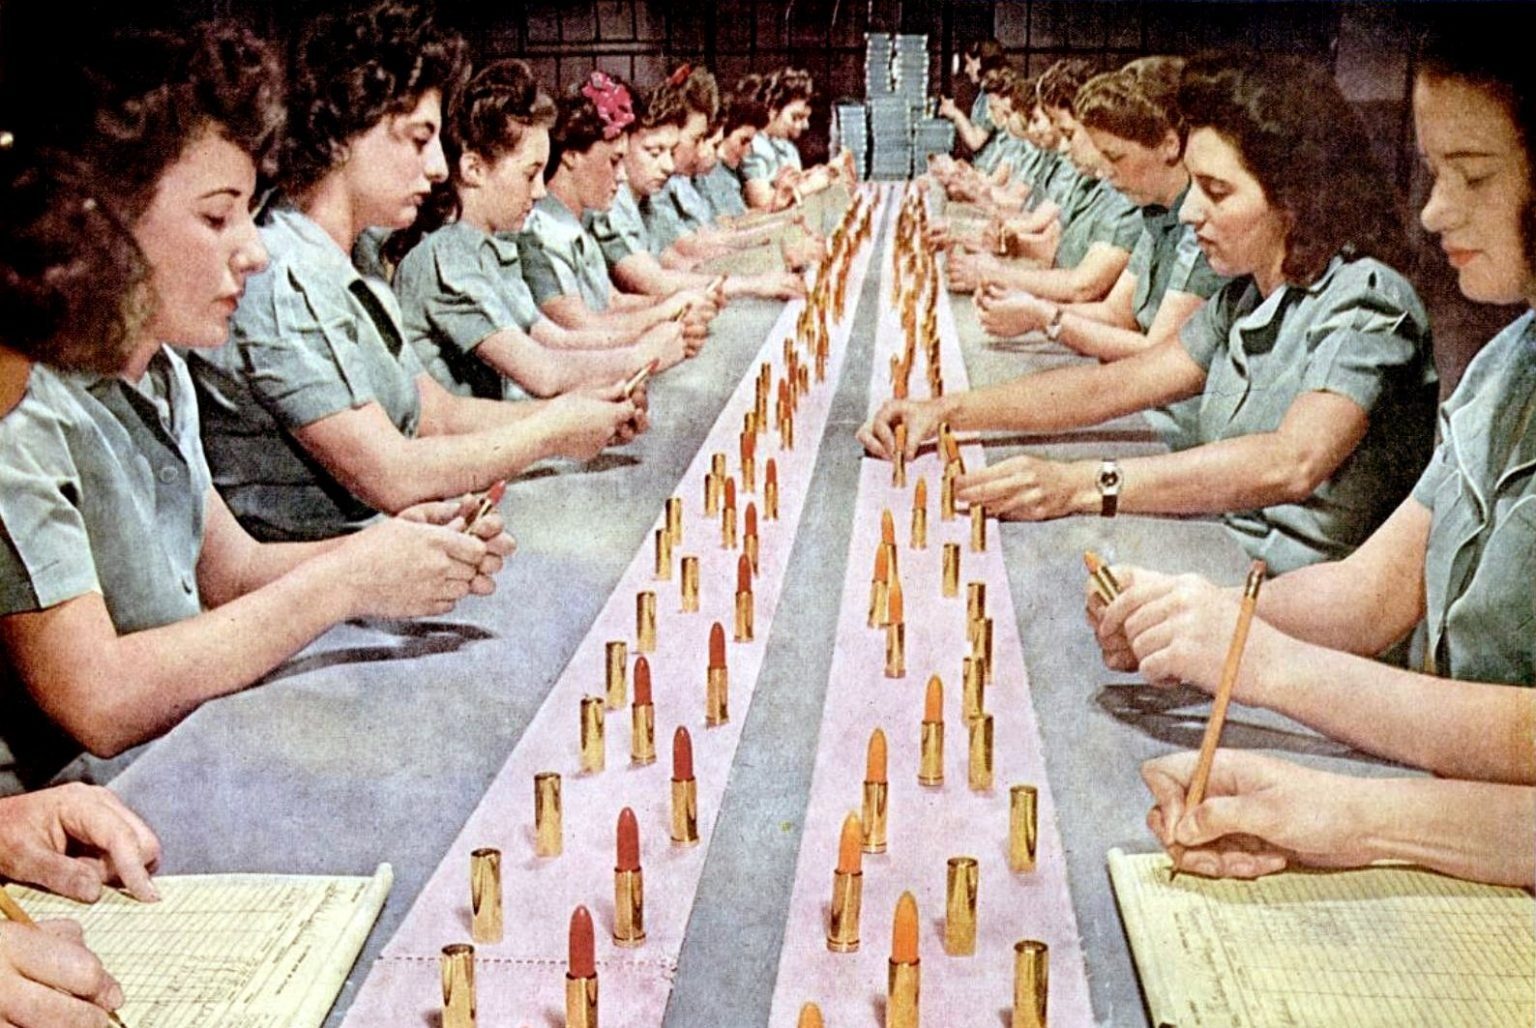 How is lipstick made - 1940s factories